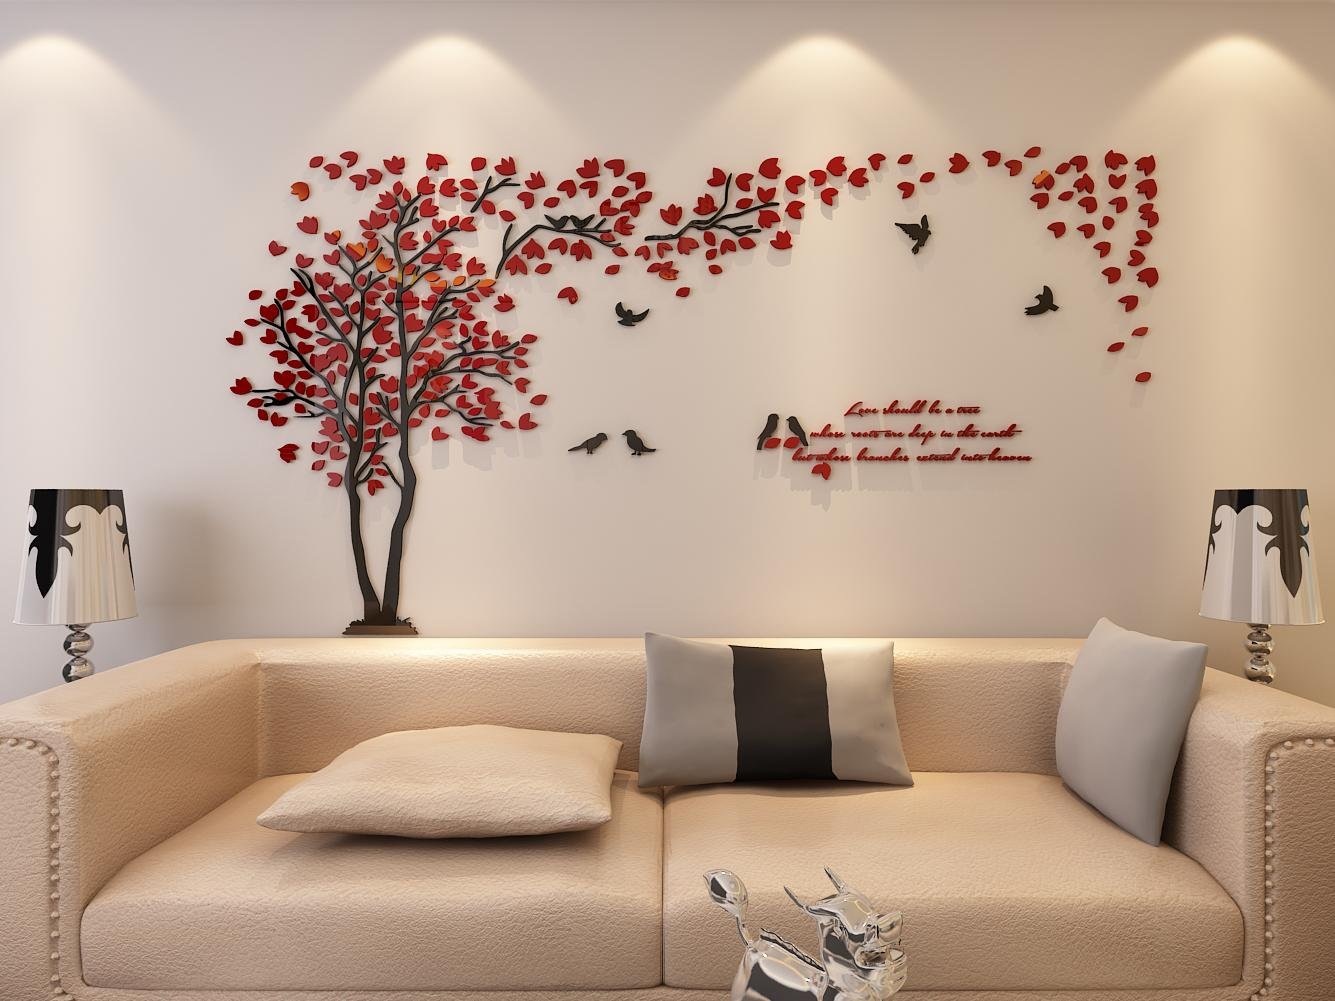 Superb Amazon.com: 3d Couple Tree Wall Murals For Living Room Bedroom Sofa  Backdrop Tv Wall Background, Originality Stickers Gift, DIY Wall Decal Home  Decor Art ...